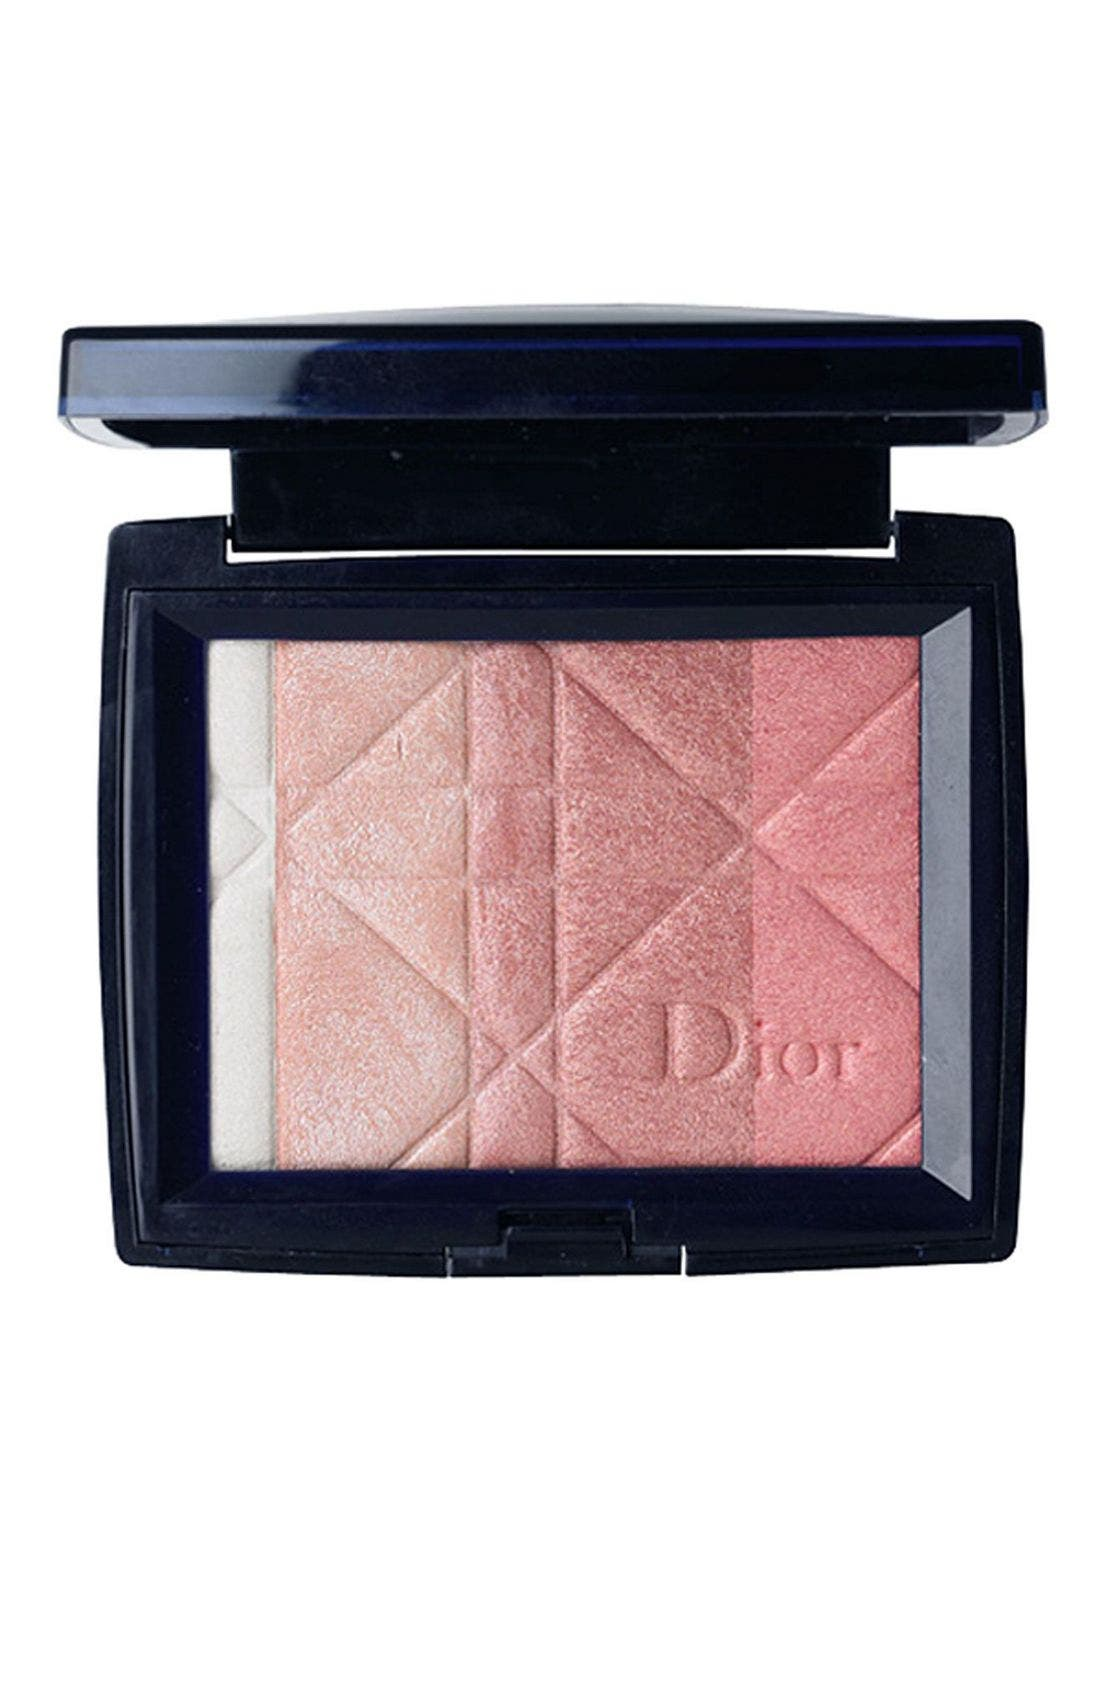 DIOR 'Diorskin' Ultra Shimmering Allover Face Powder, Main, color, 000